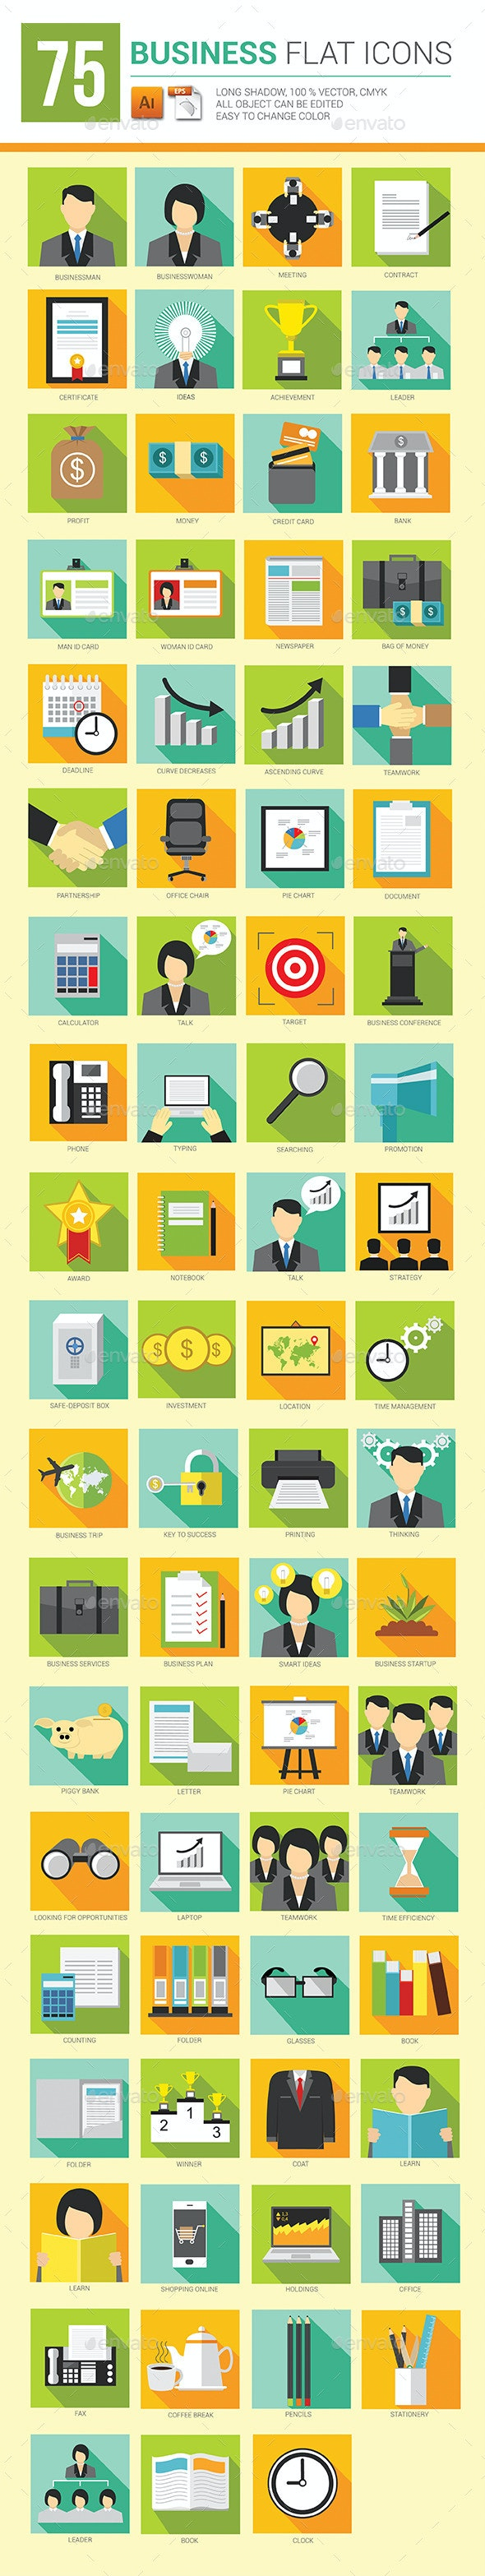 75 Business Flat Icons Long Shadow - Business Icons